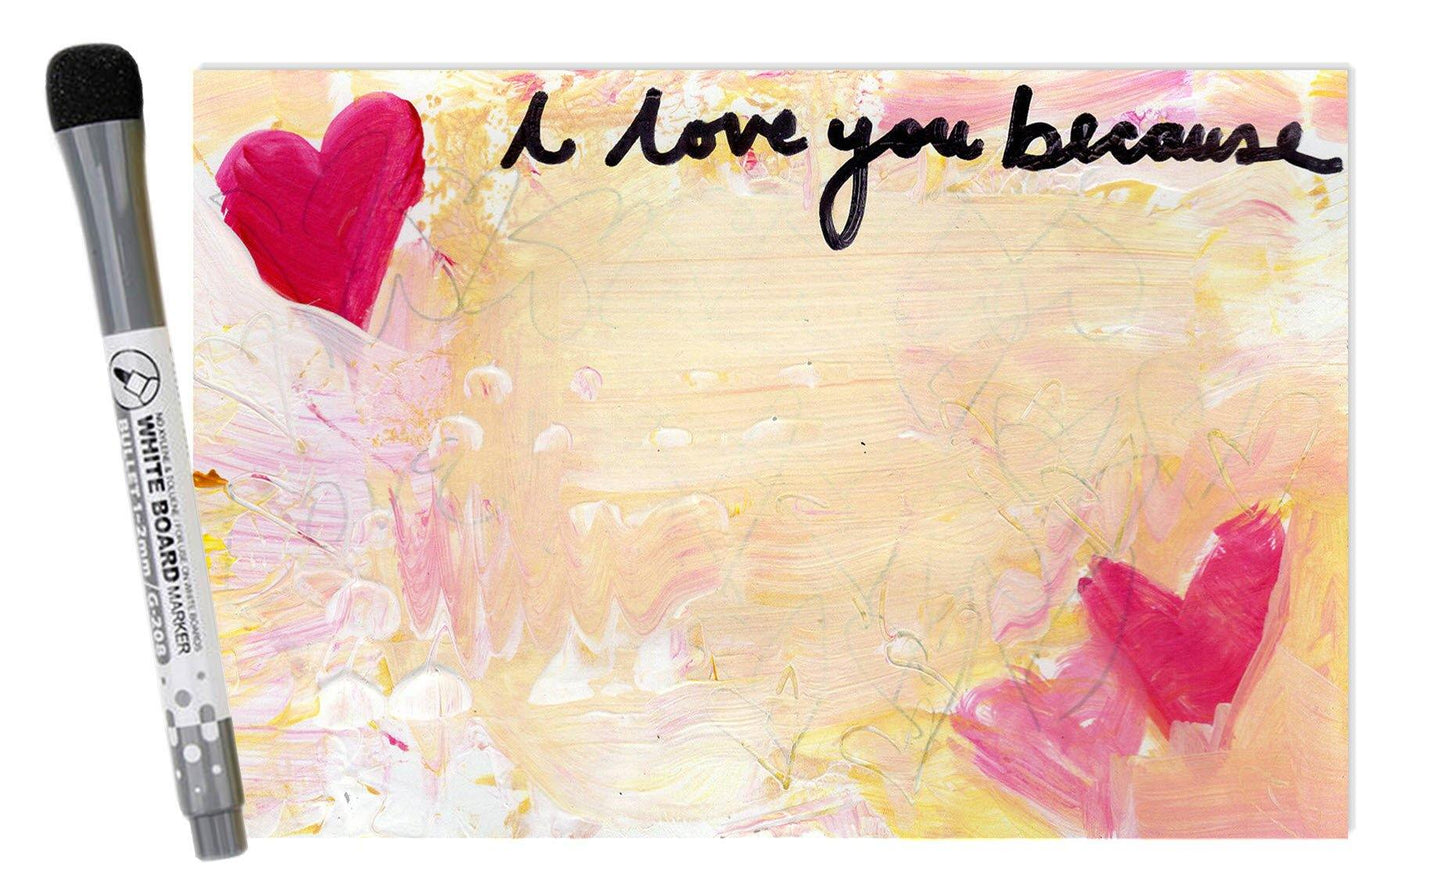 I Love You Because... Acrylic Fridge Magnet 6' x 4' inches